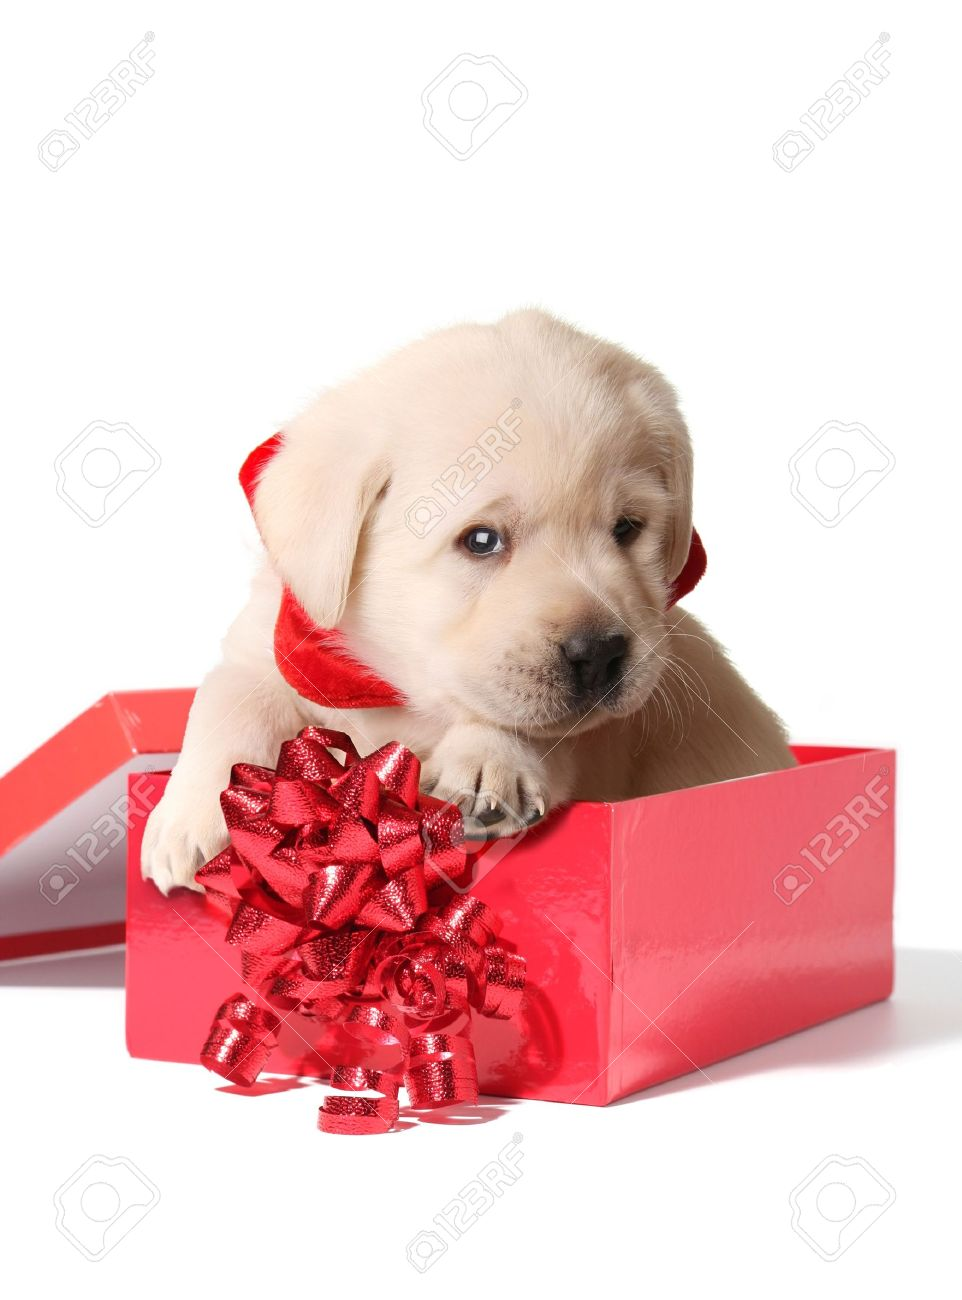 Labrador Puppy In A Red Christmas Box Stock Photo Picture And Royalty Free Image Image 11476672